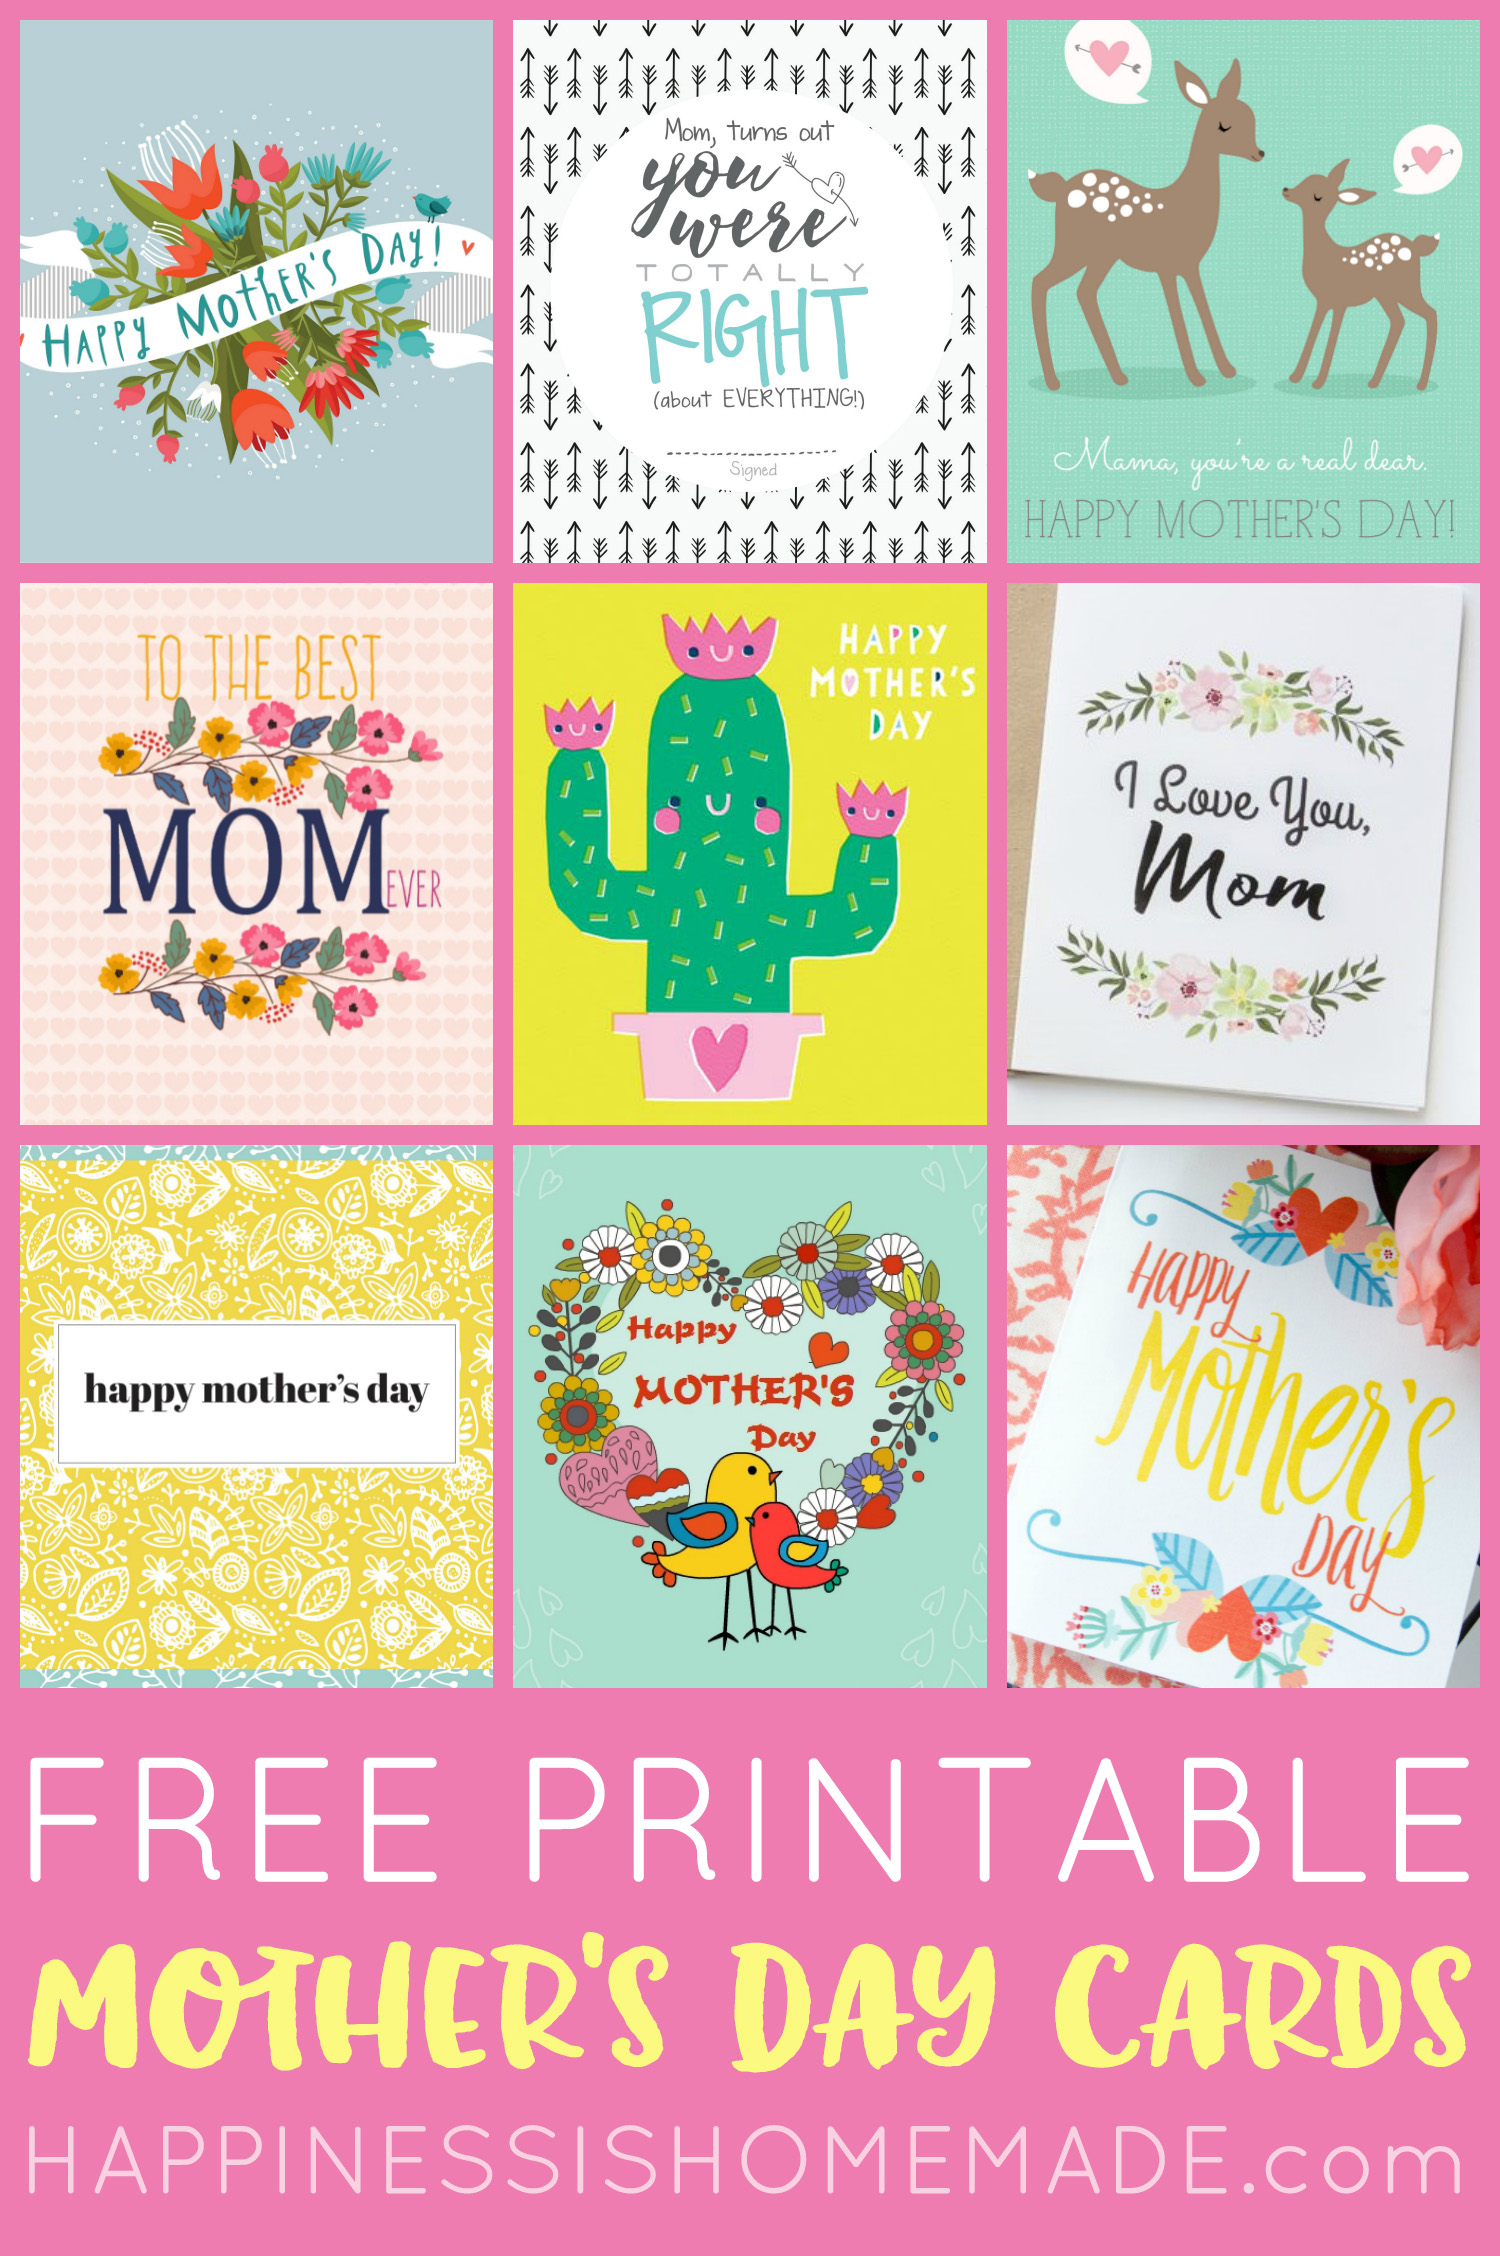 free printable mother 39 s day cards happiness is homemade. Black Bedroom Furniture Sets. Home Design Ideas